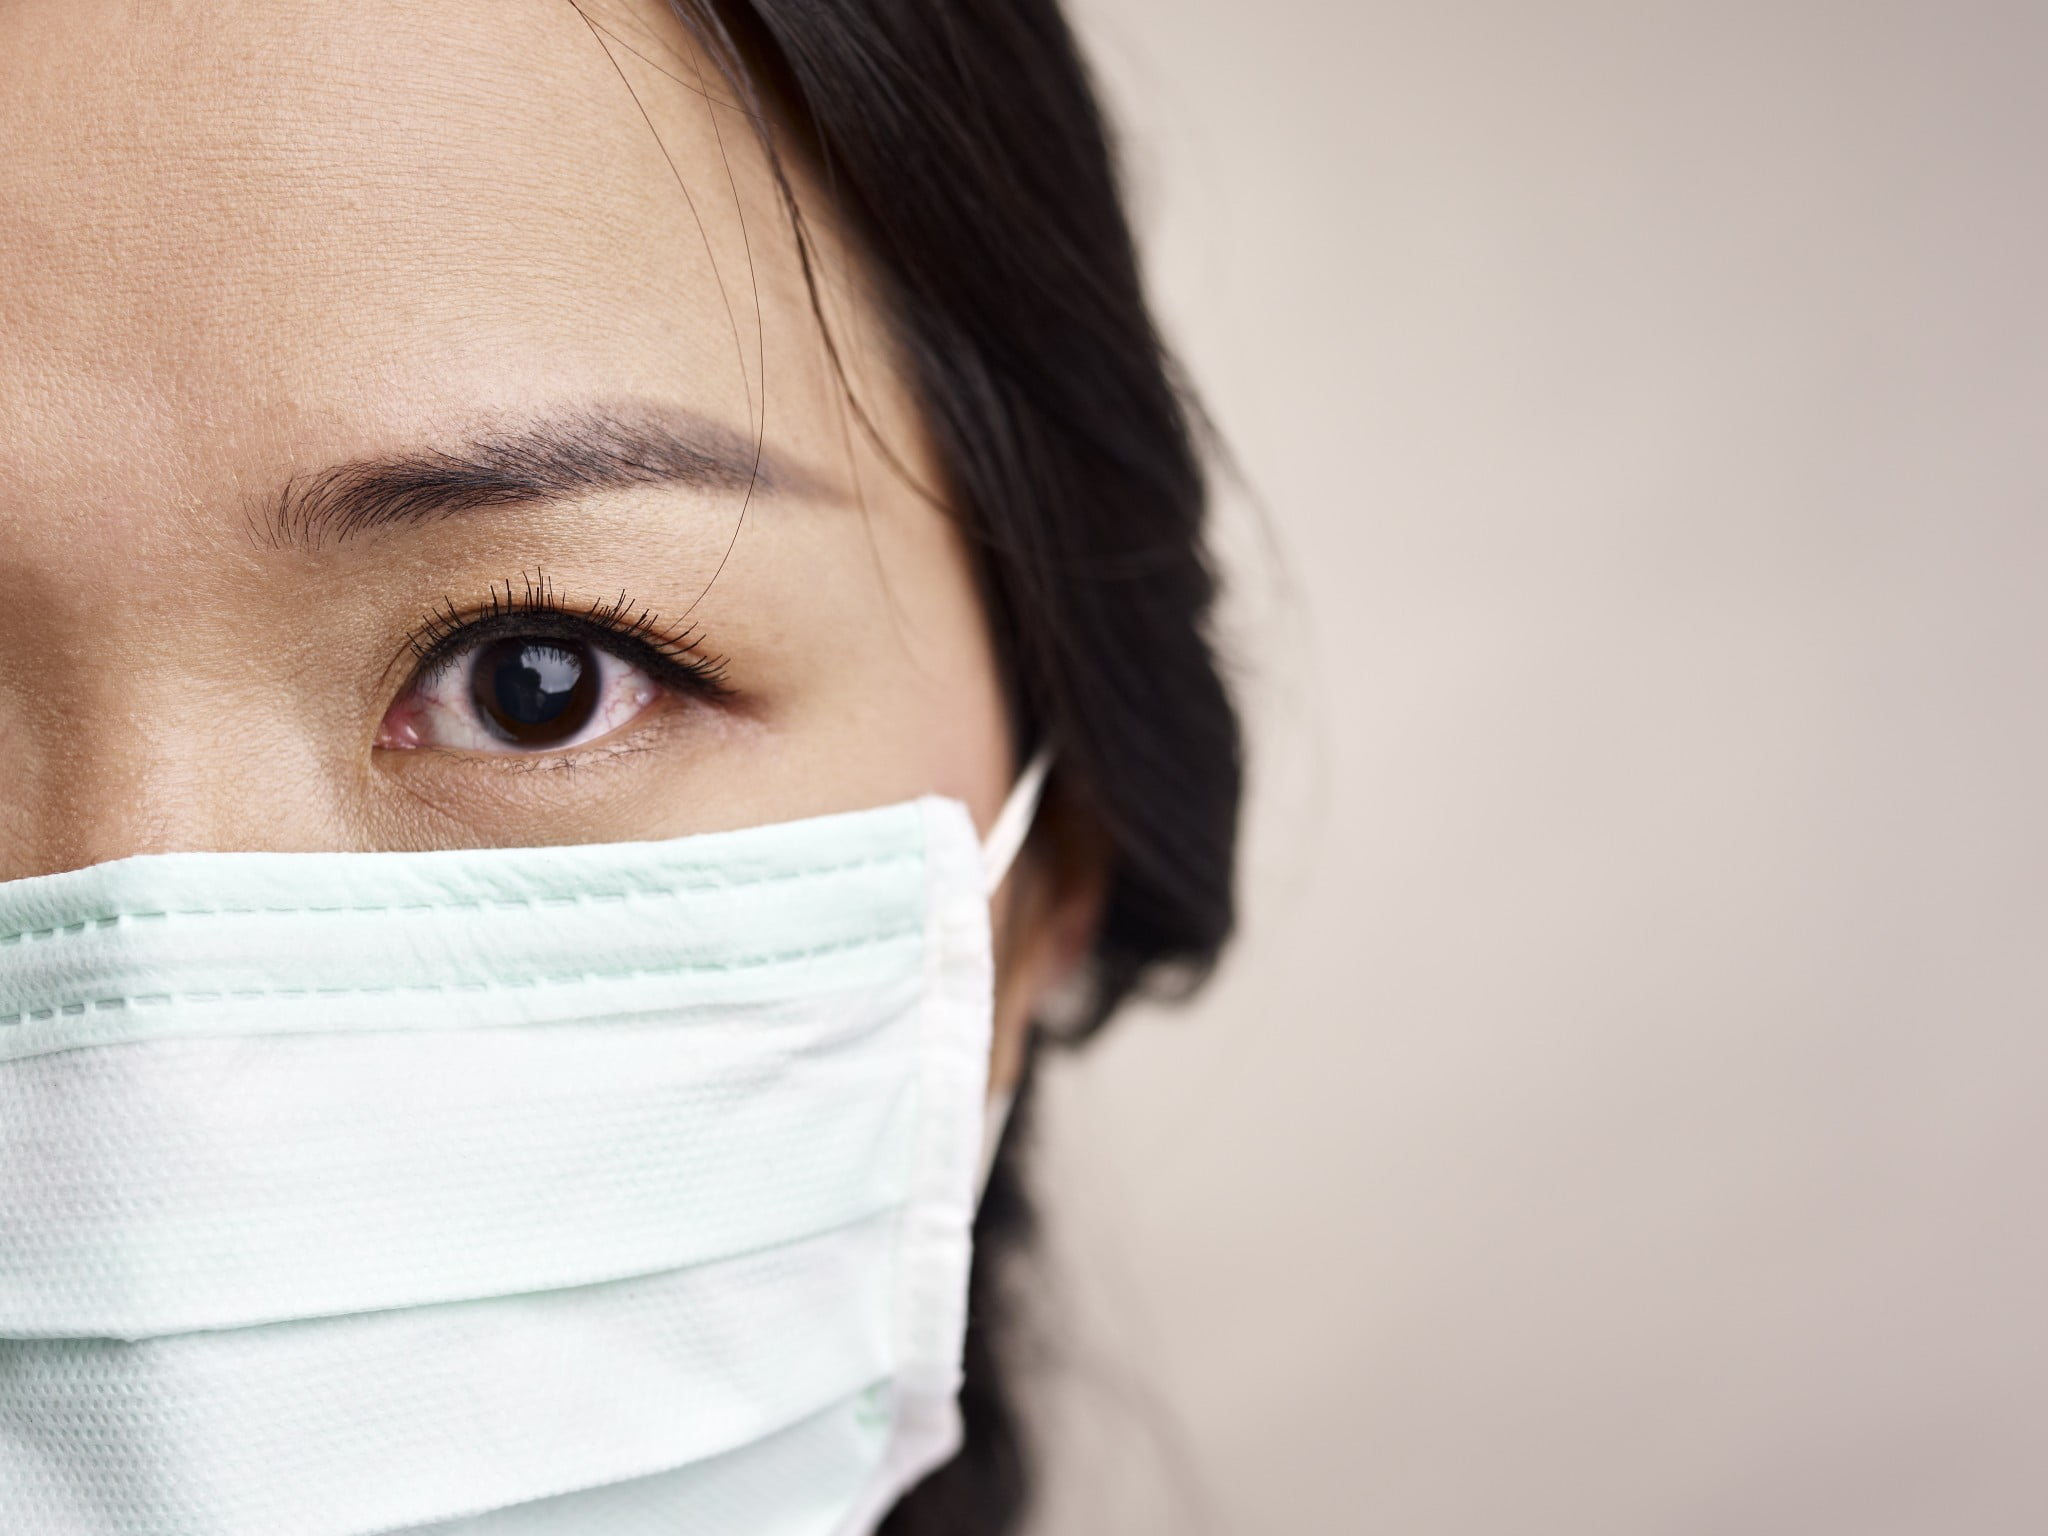 MERS concept: woman in hygiene mask